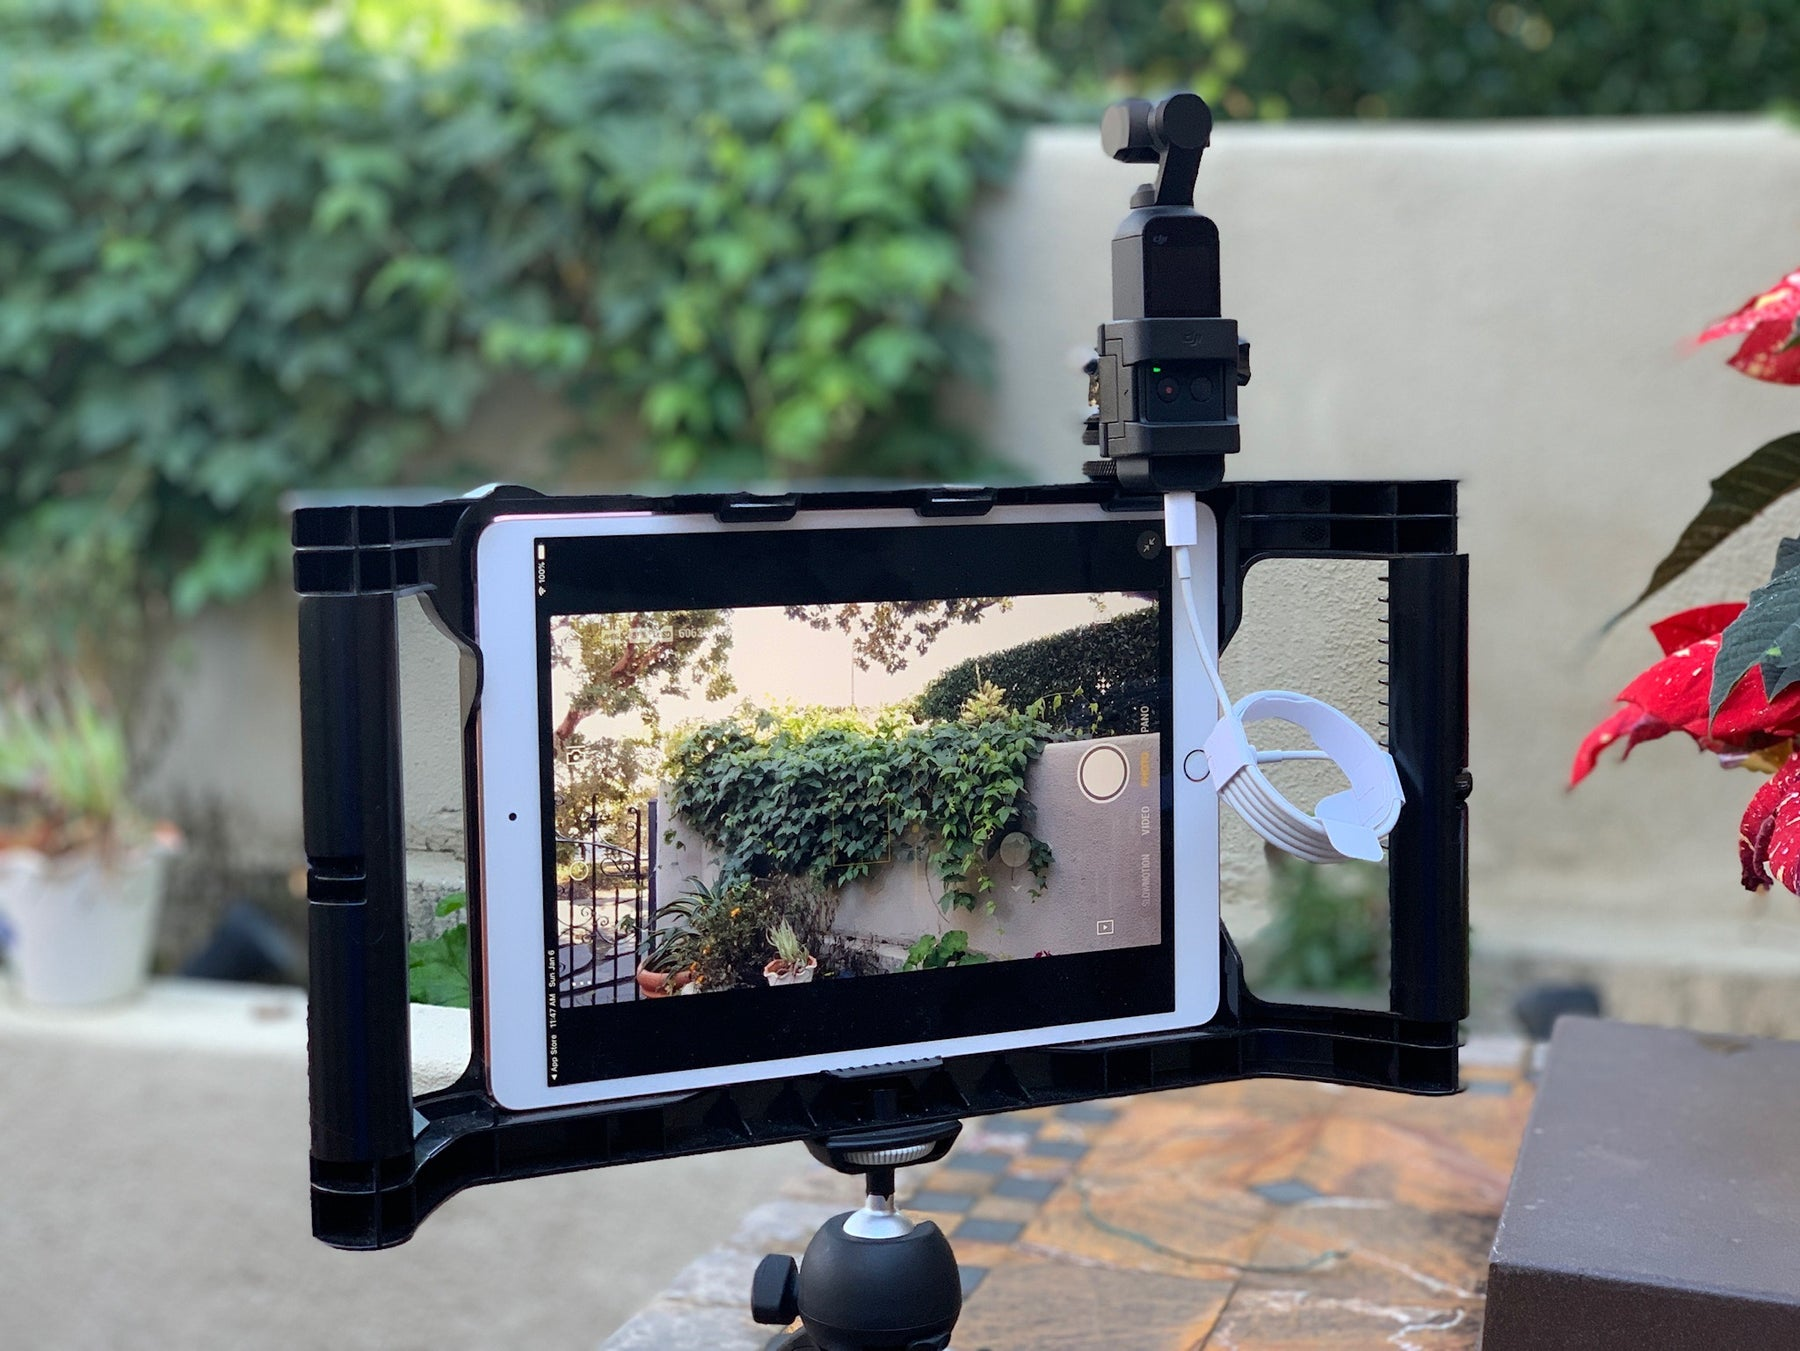 Using the Osmo Pocket with your iOgrapher and iPad/iPhone